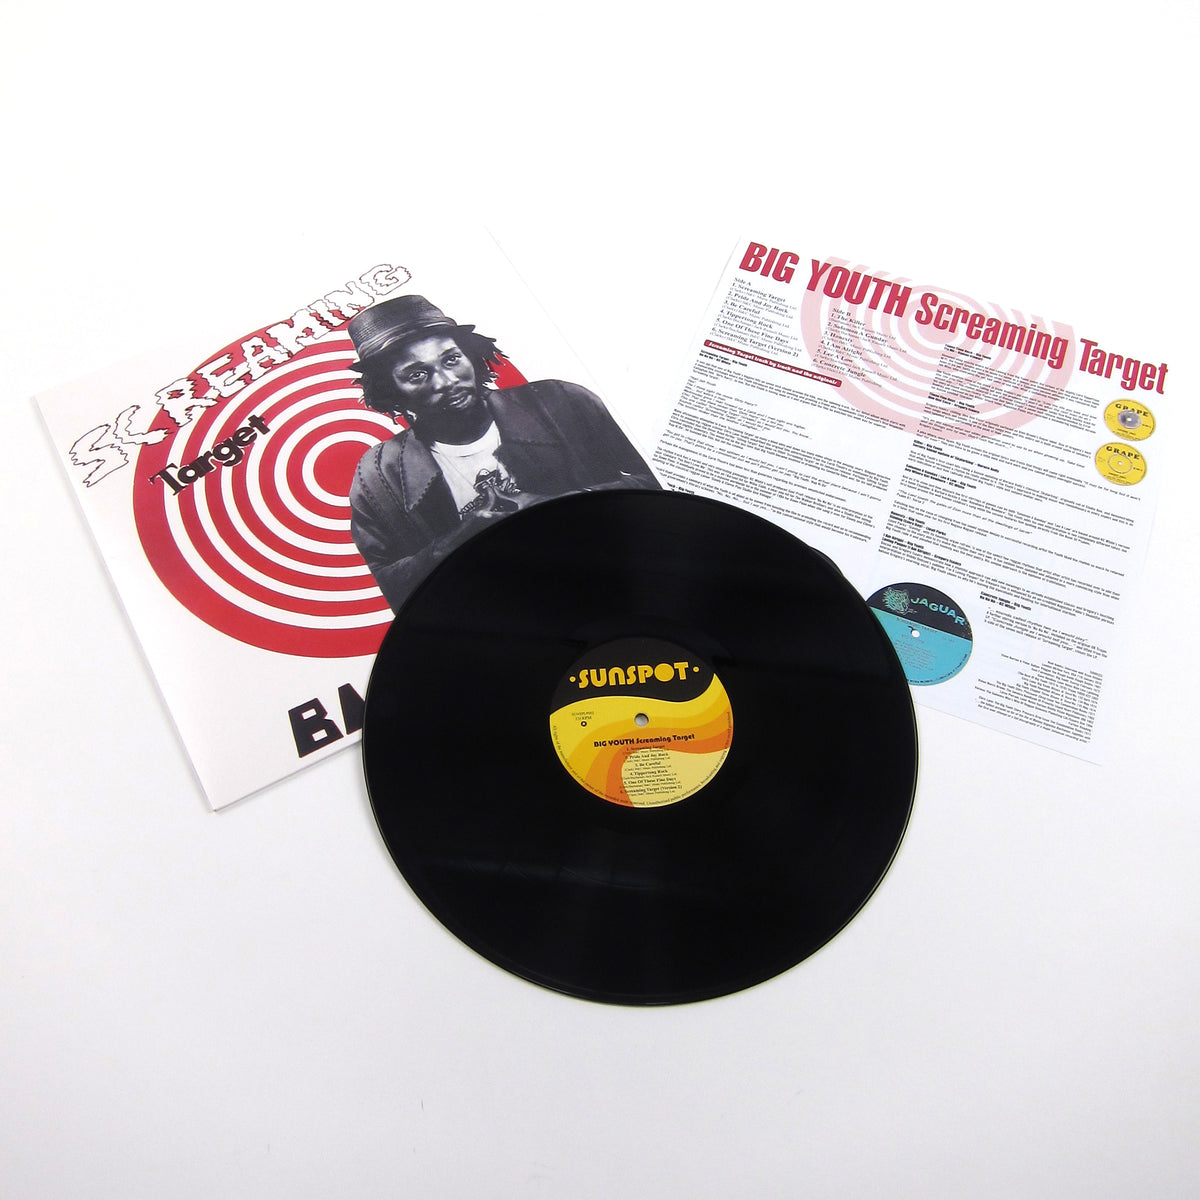 Big Youth: Screaming Target Vinyl LP